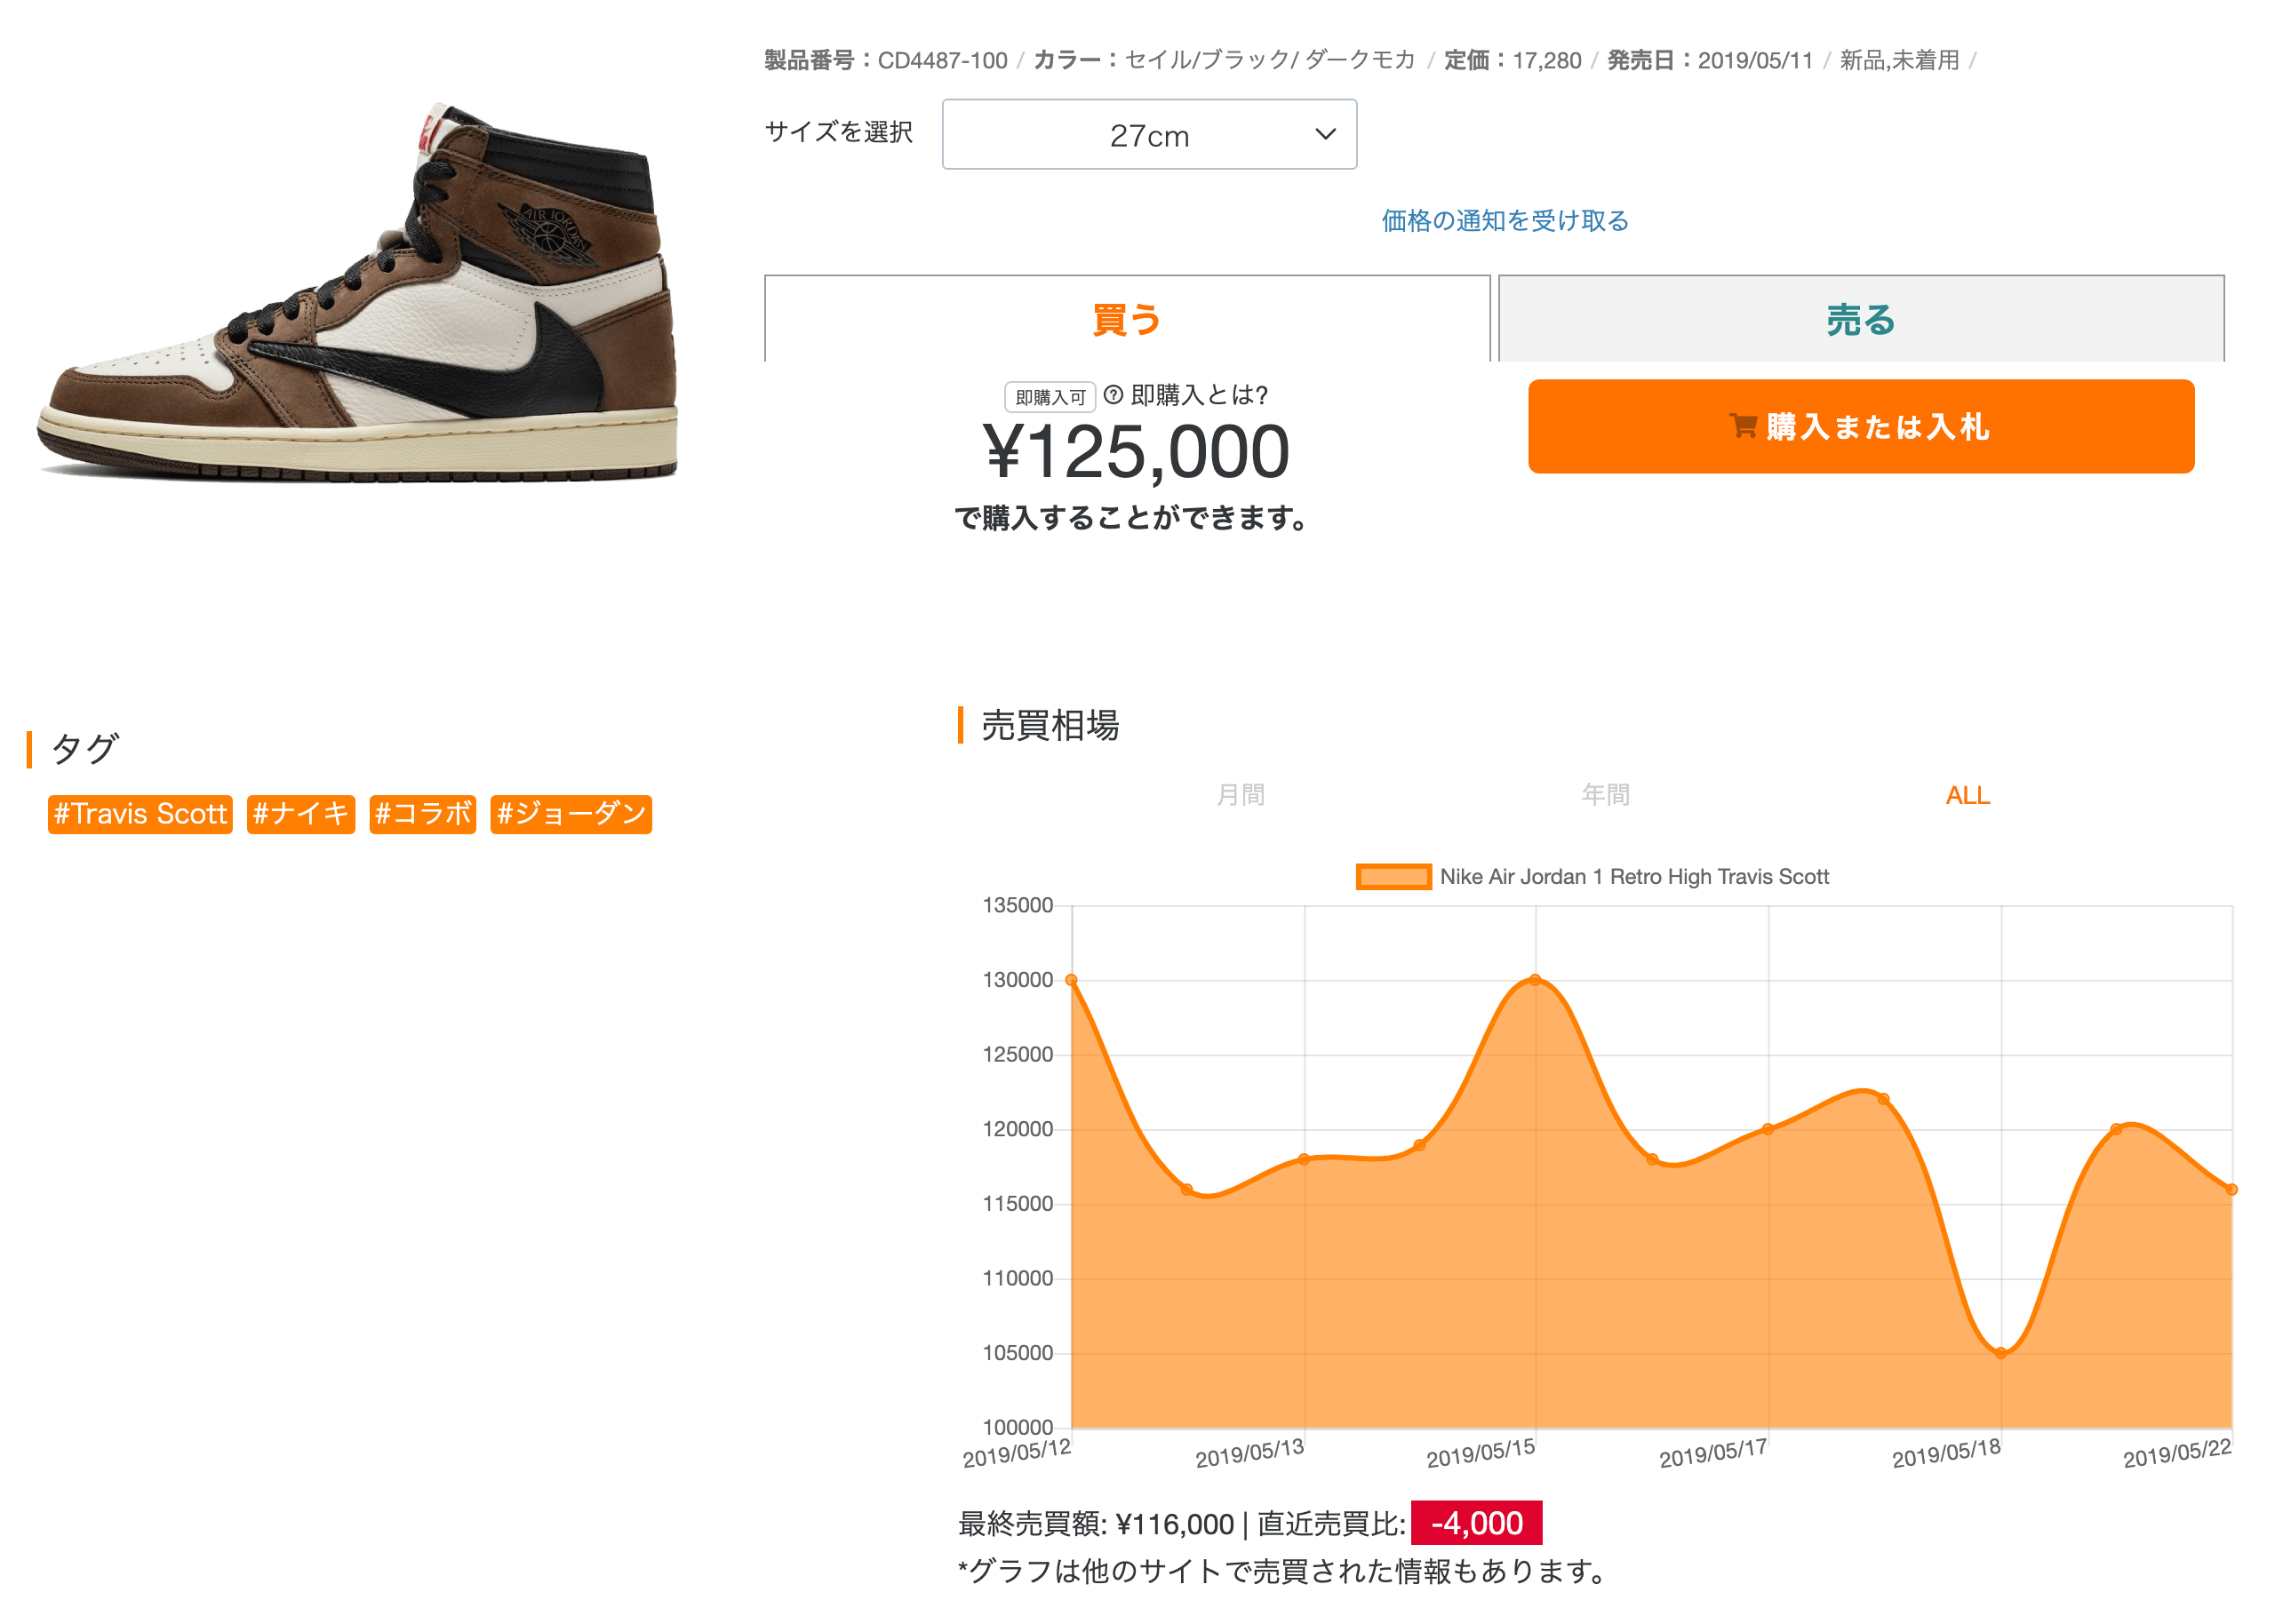 screencapture-monokabu-items-nike-air-jordan-1-retro-high-travis-scott-2019-05-25-08_30_12